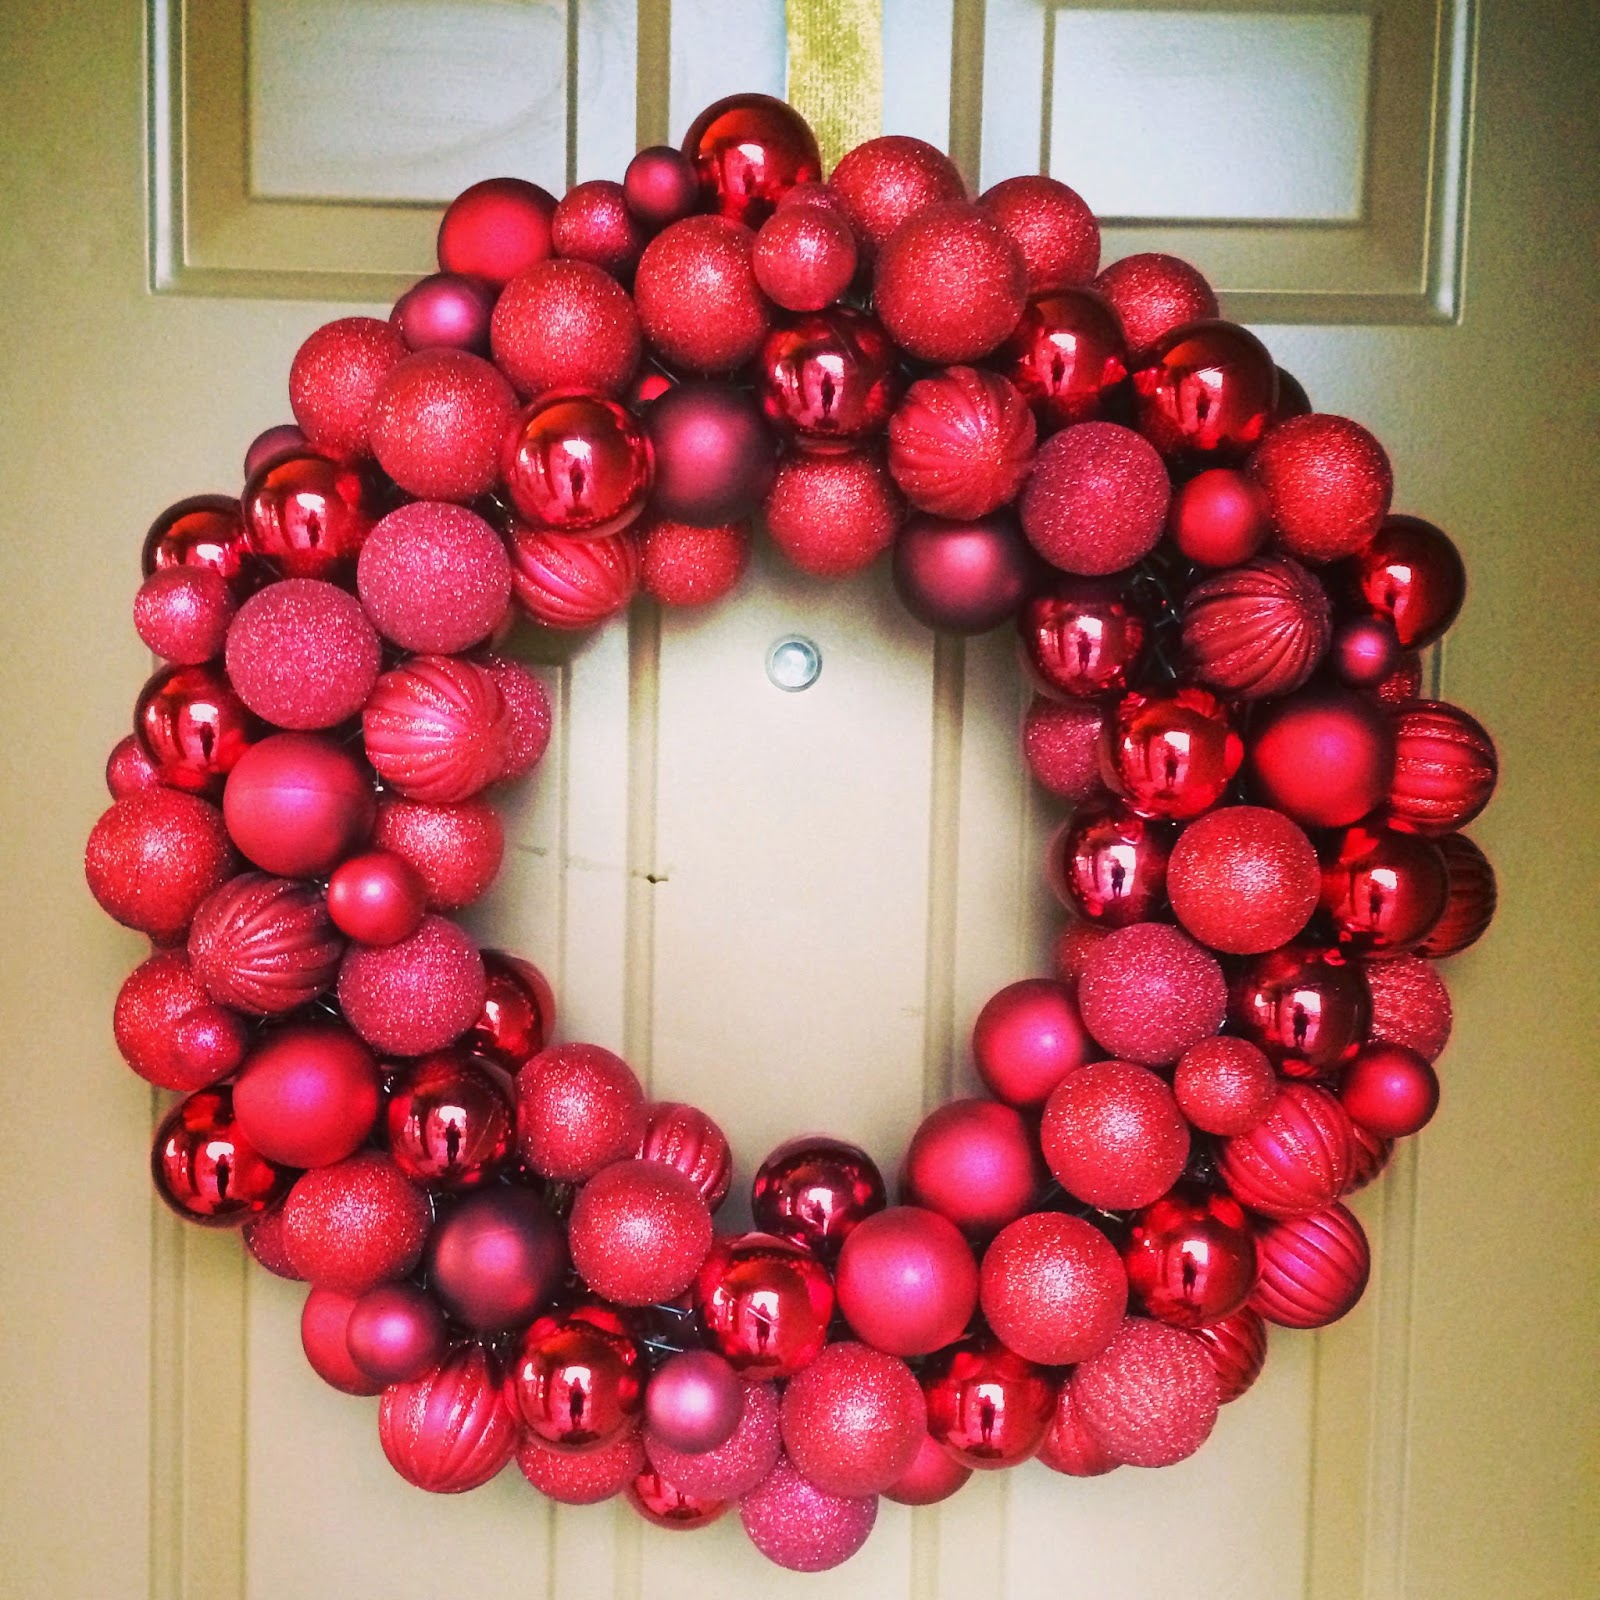 Lisa loves john 2014 most ornament wreaths use a hot glue gun to glue bulbsornaments to a styrofoam wreath frame i love the way they look but i was a little bit concerned solutioingenieria Choice Image